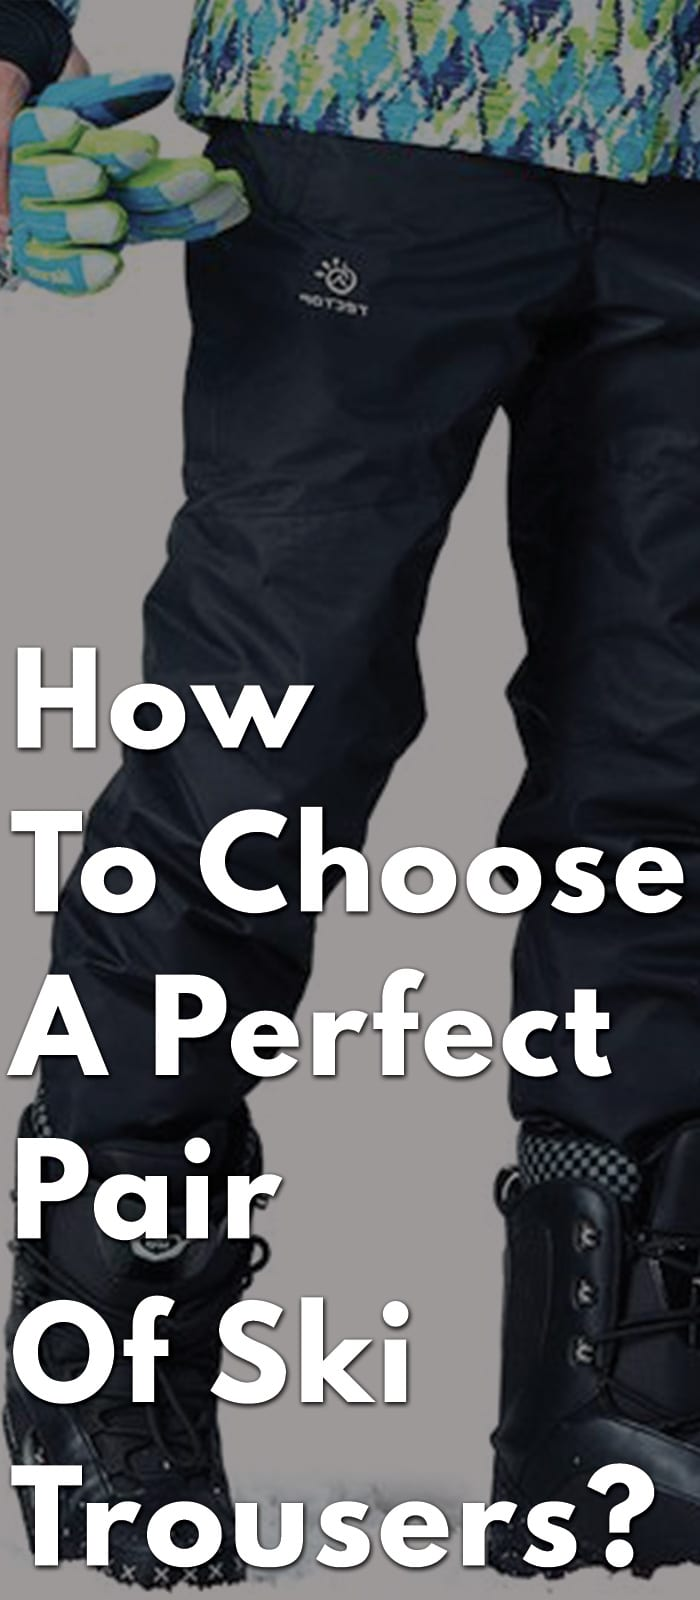 How-To-Choose-A-Perfect-Pair-Of-Ski-Trousers